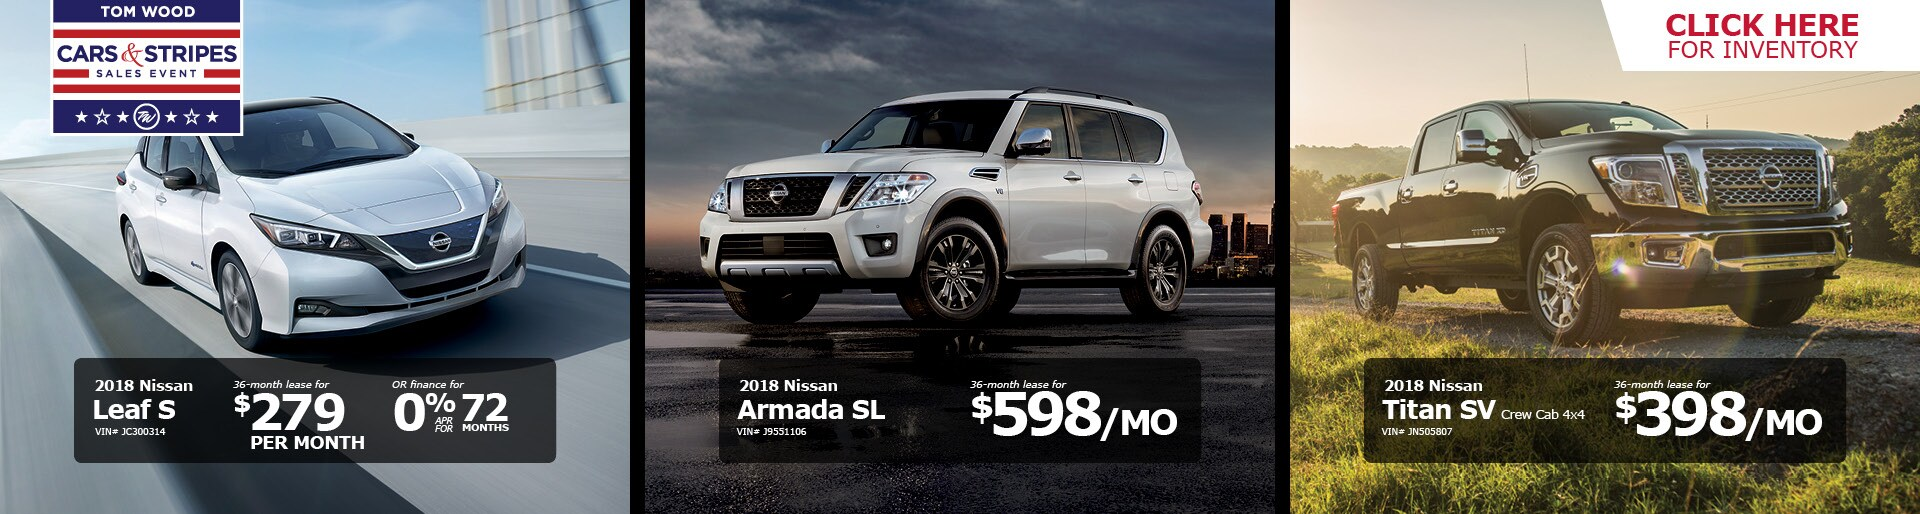 Nissan Dealership Indianapolis >> Tom Wood Nissan New Used Nissan Dealer Indianapolis In